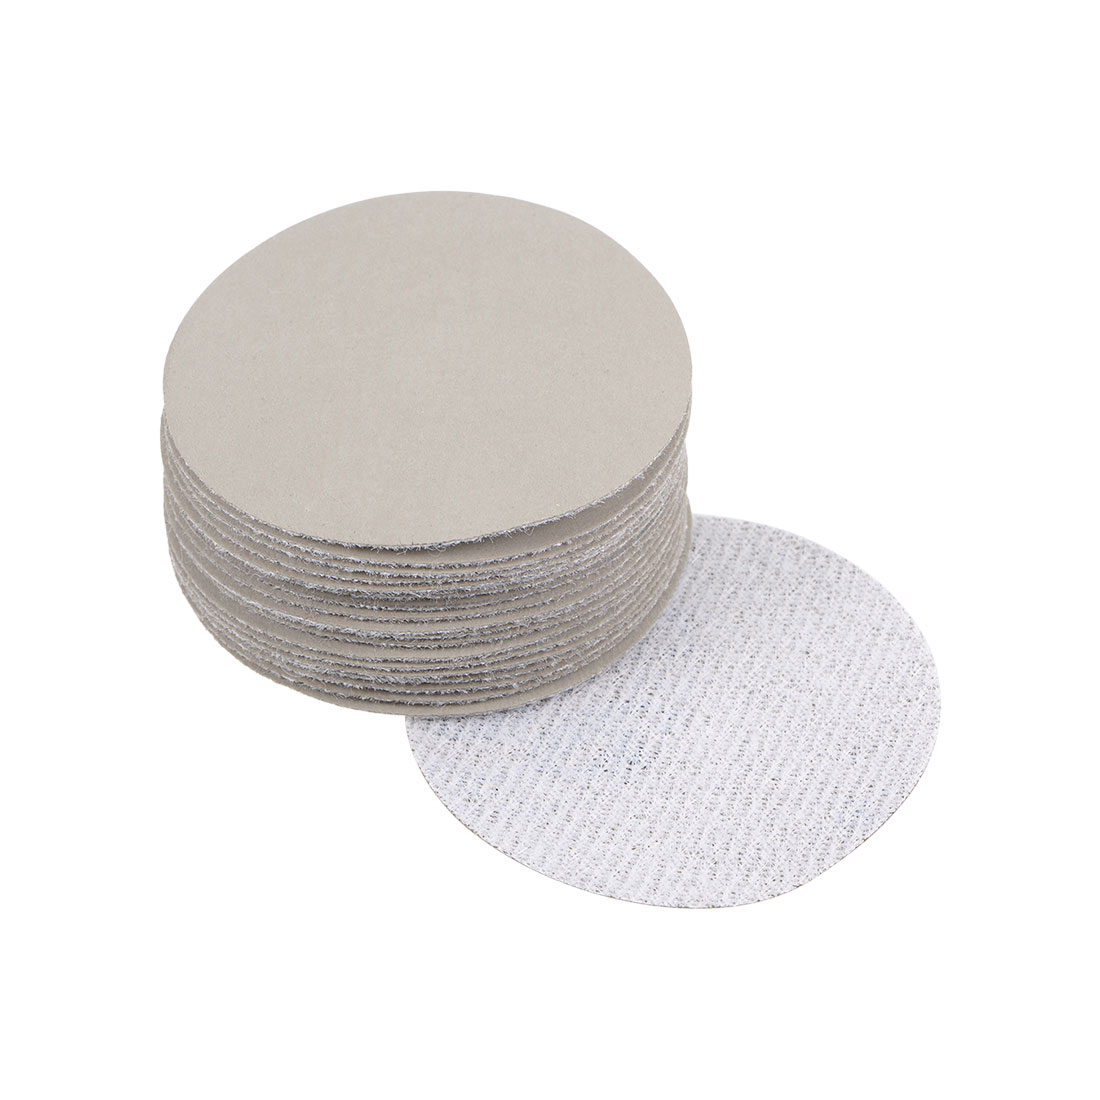 2 inch Wet Dry Discs 4000 Grit Hook and Loop Sanding Disc Silicon Carbide 20pcs